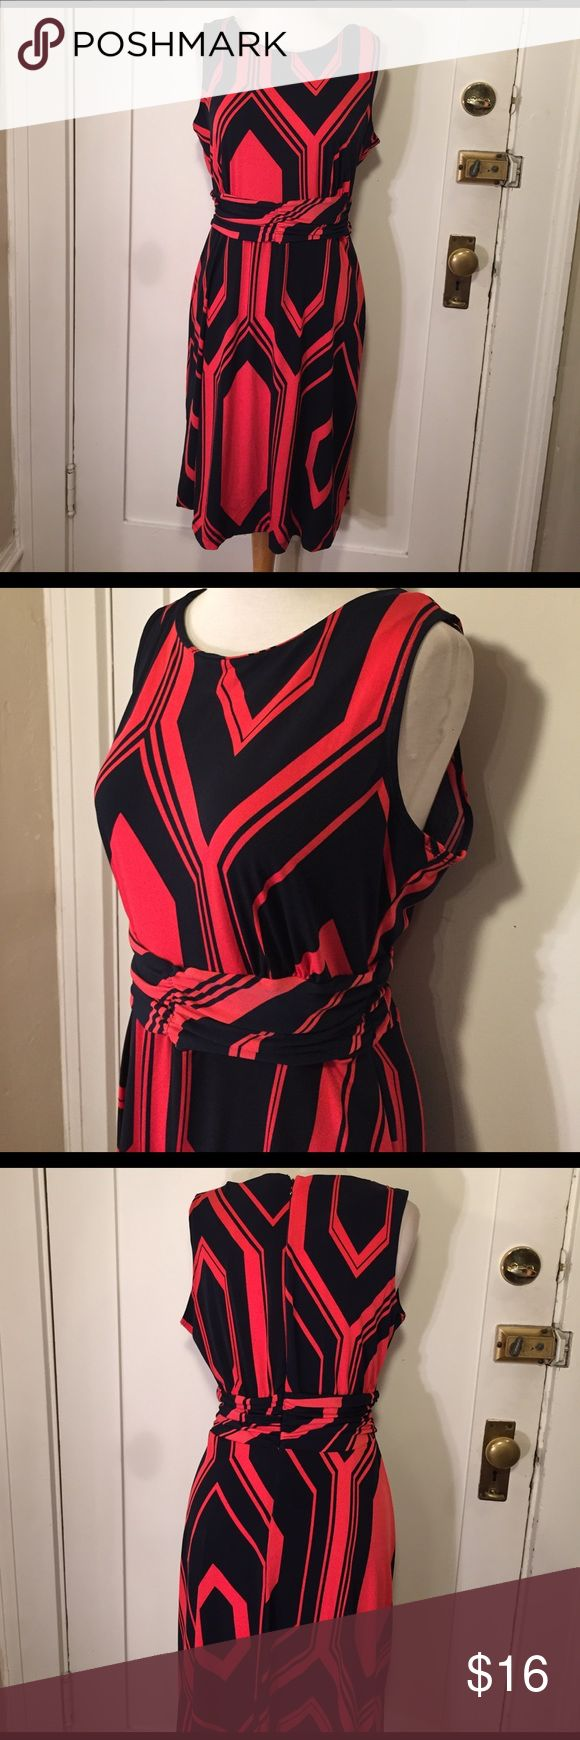 NY Collection Orange navy chevron zigzag dress NWT This is a beautiful dress from NY collection,Red orange design and navy zigzag, almost a Chevron print. See pictures for details. New with tags's. Be sure and check out other items in closet and bundle to receive discounts. NY Collection Dresses